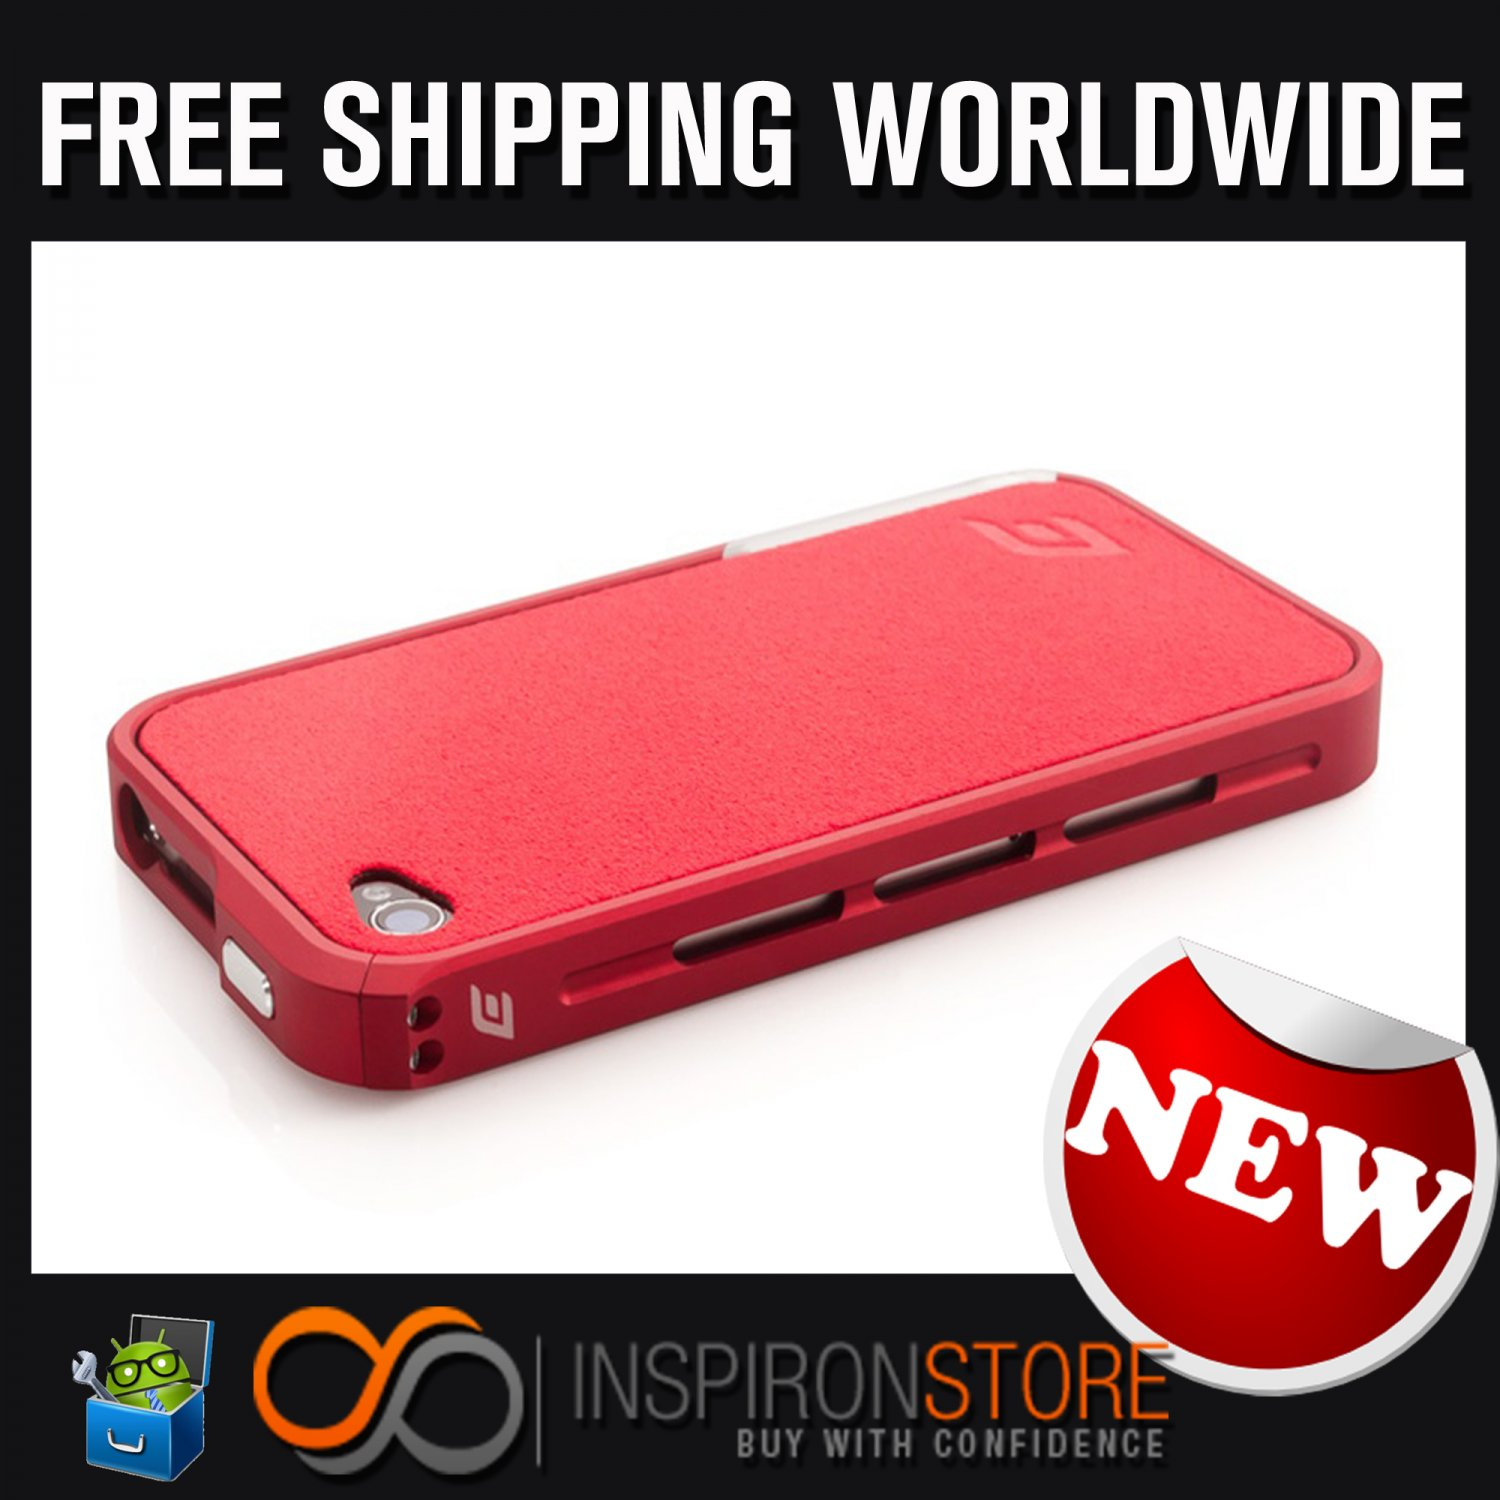 New INSPIRON Element Case Vapor Pro Chroma RED Edition For Iphone 4/4s Free Shipping